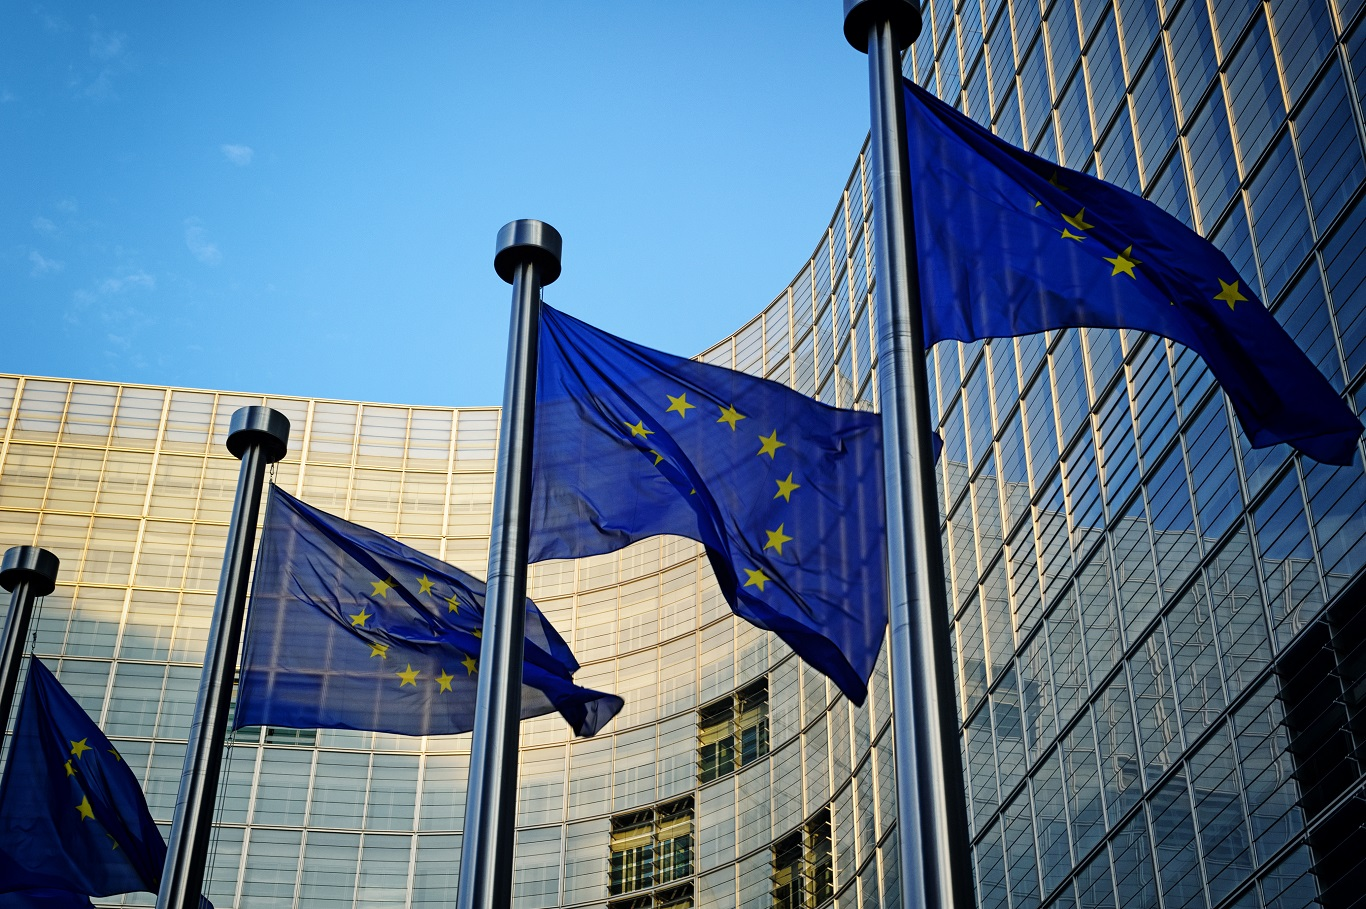 European Commission publishes sustainable finance reports